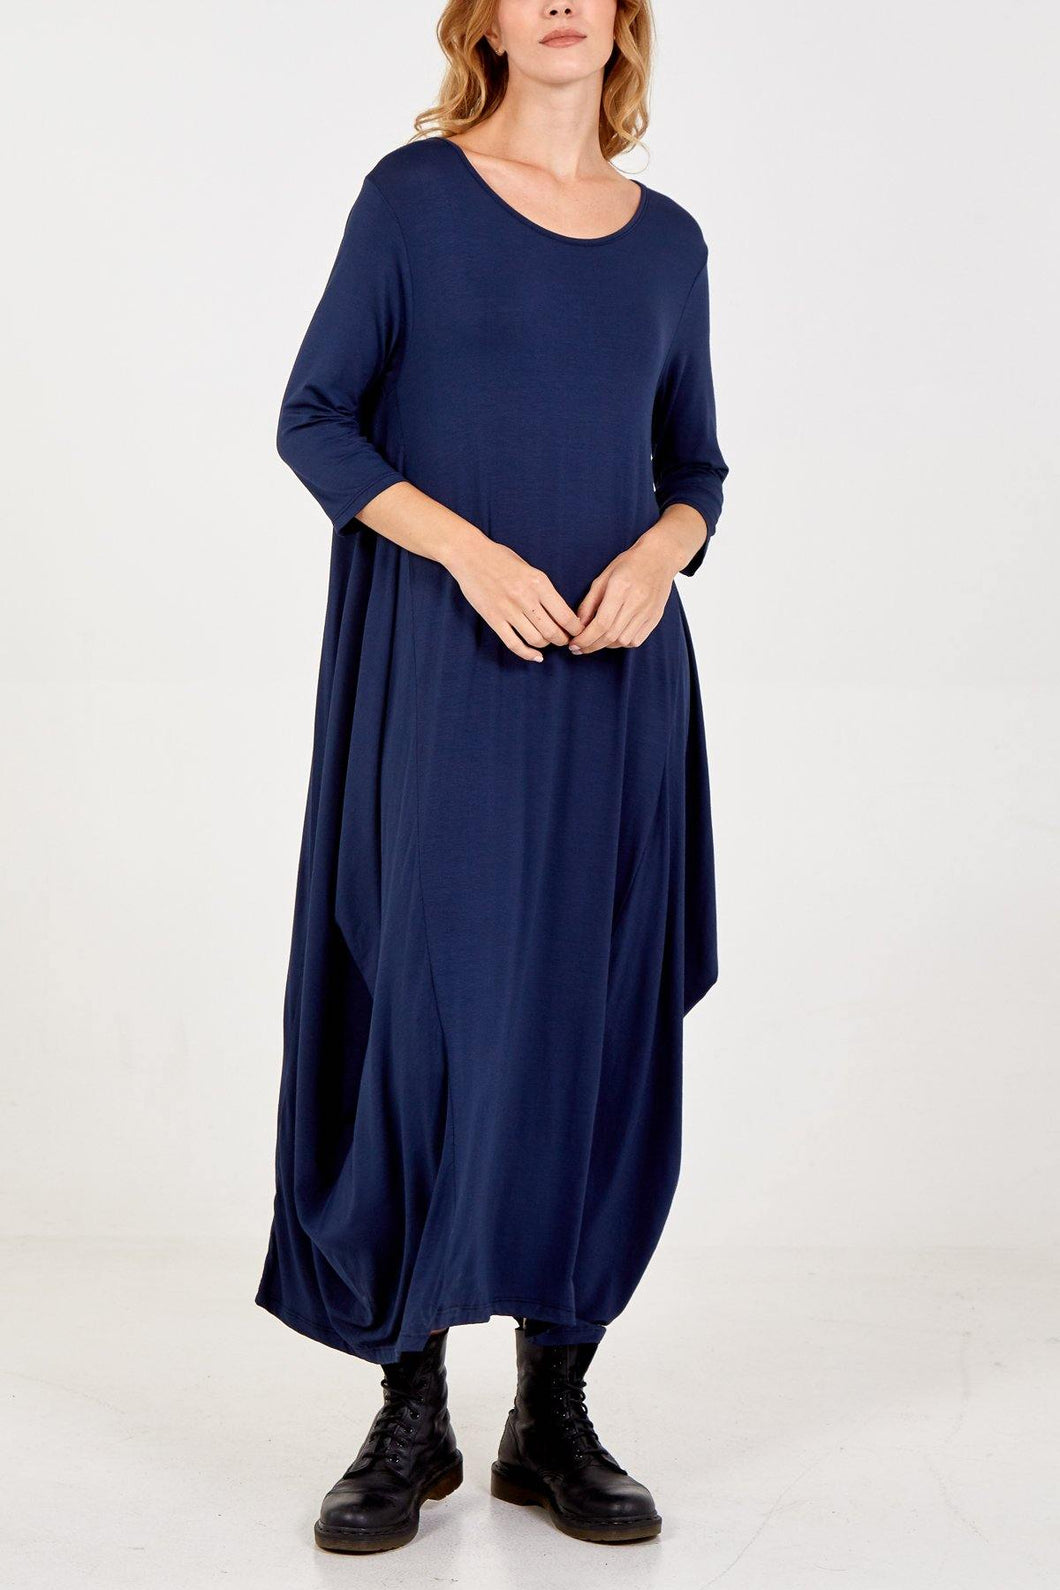 Long Sleeve Parachute Dress freeshipping - herfreespirit